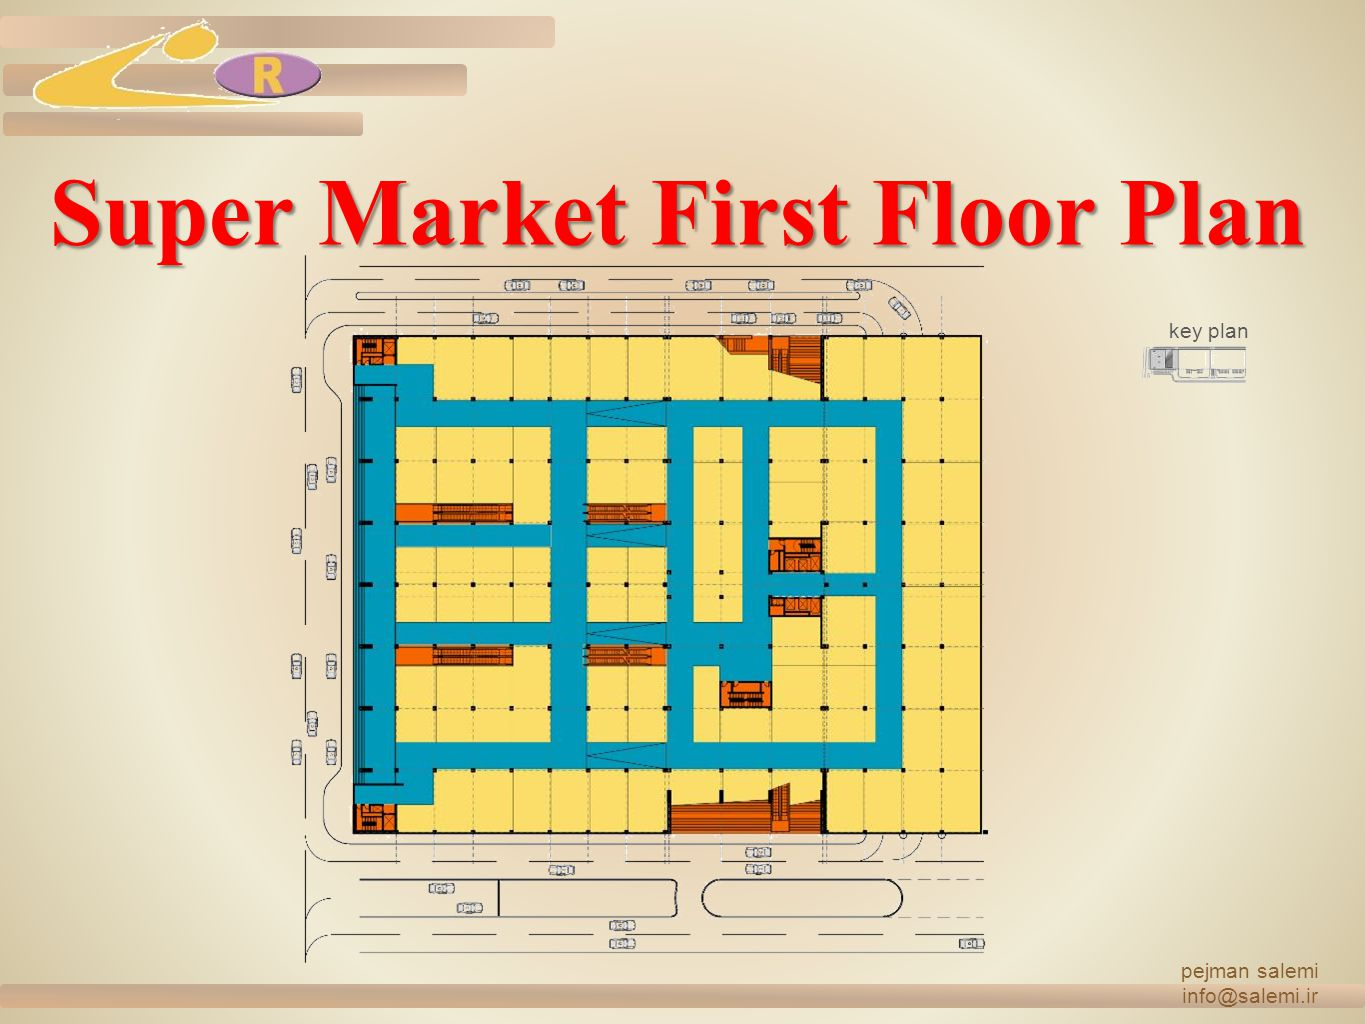 Super Market First Floor Plan